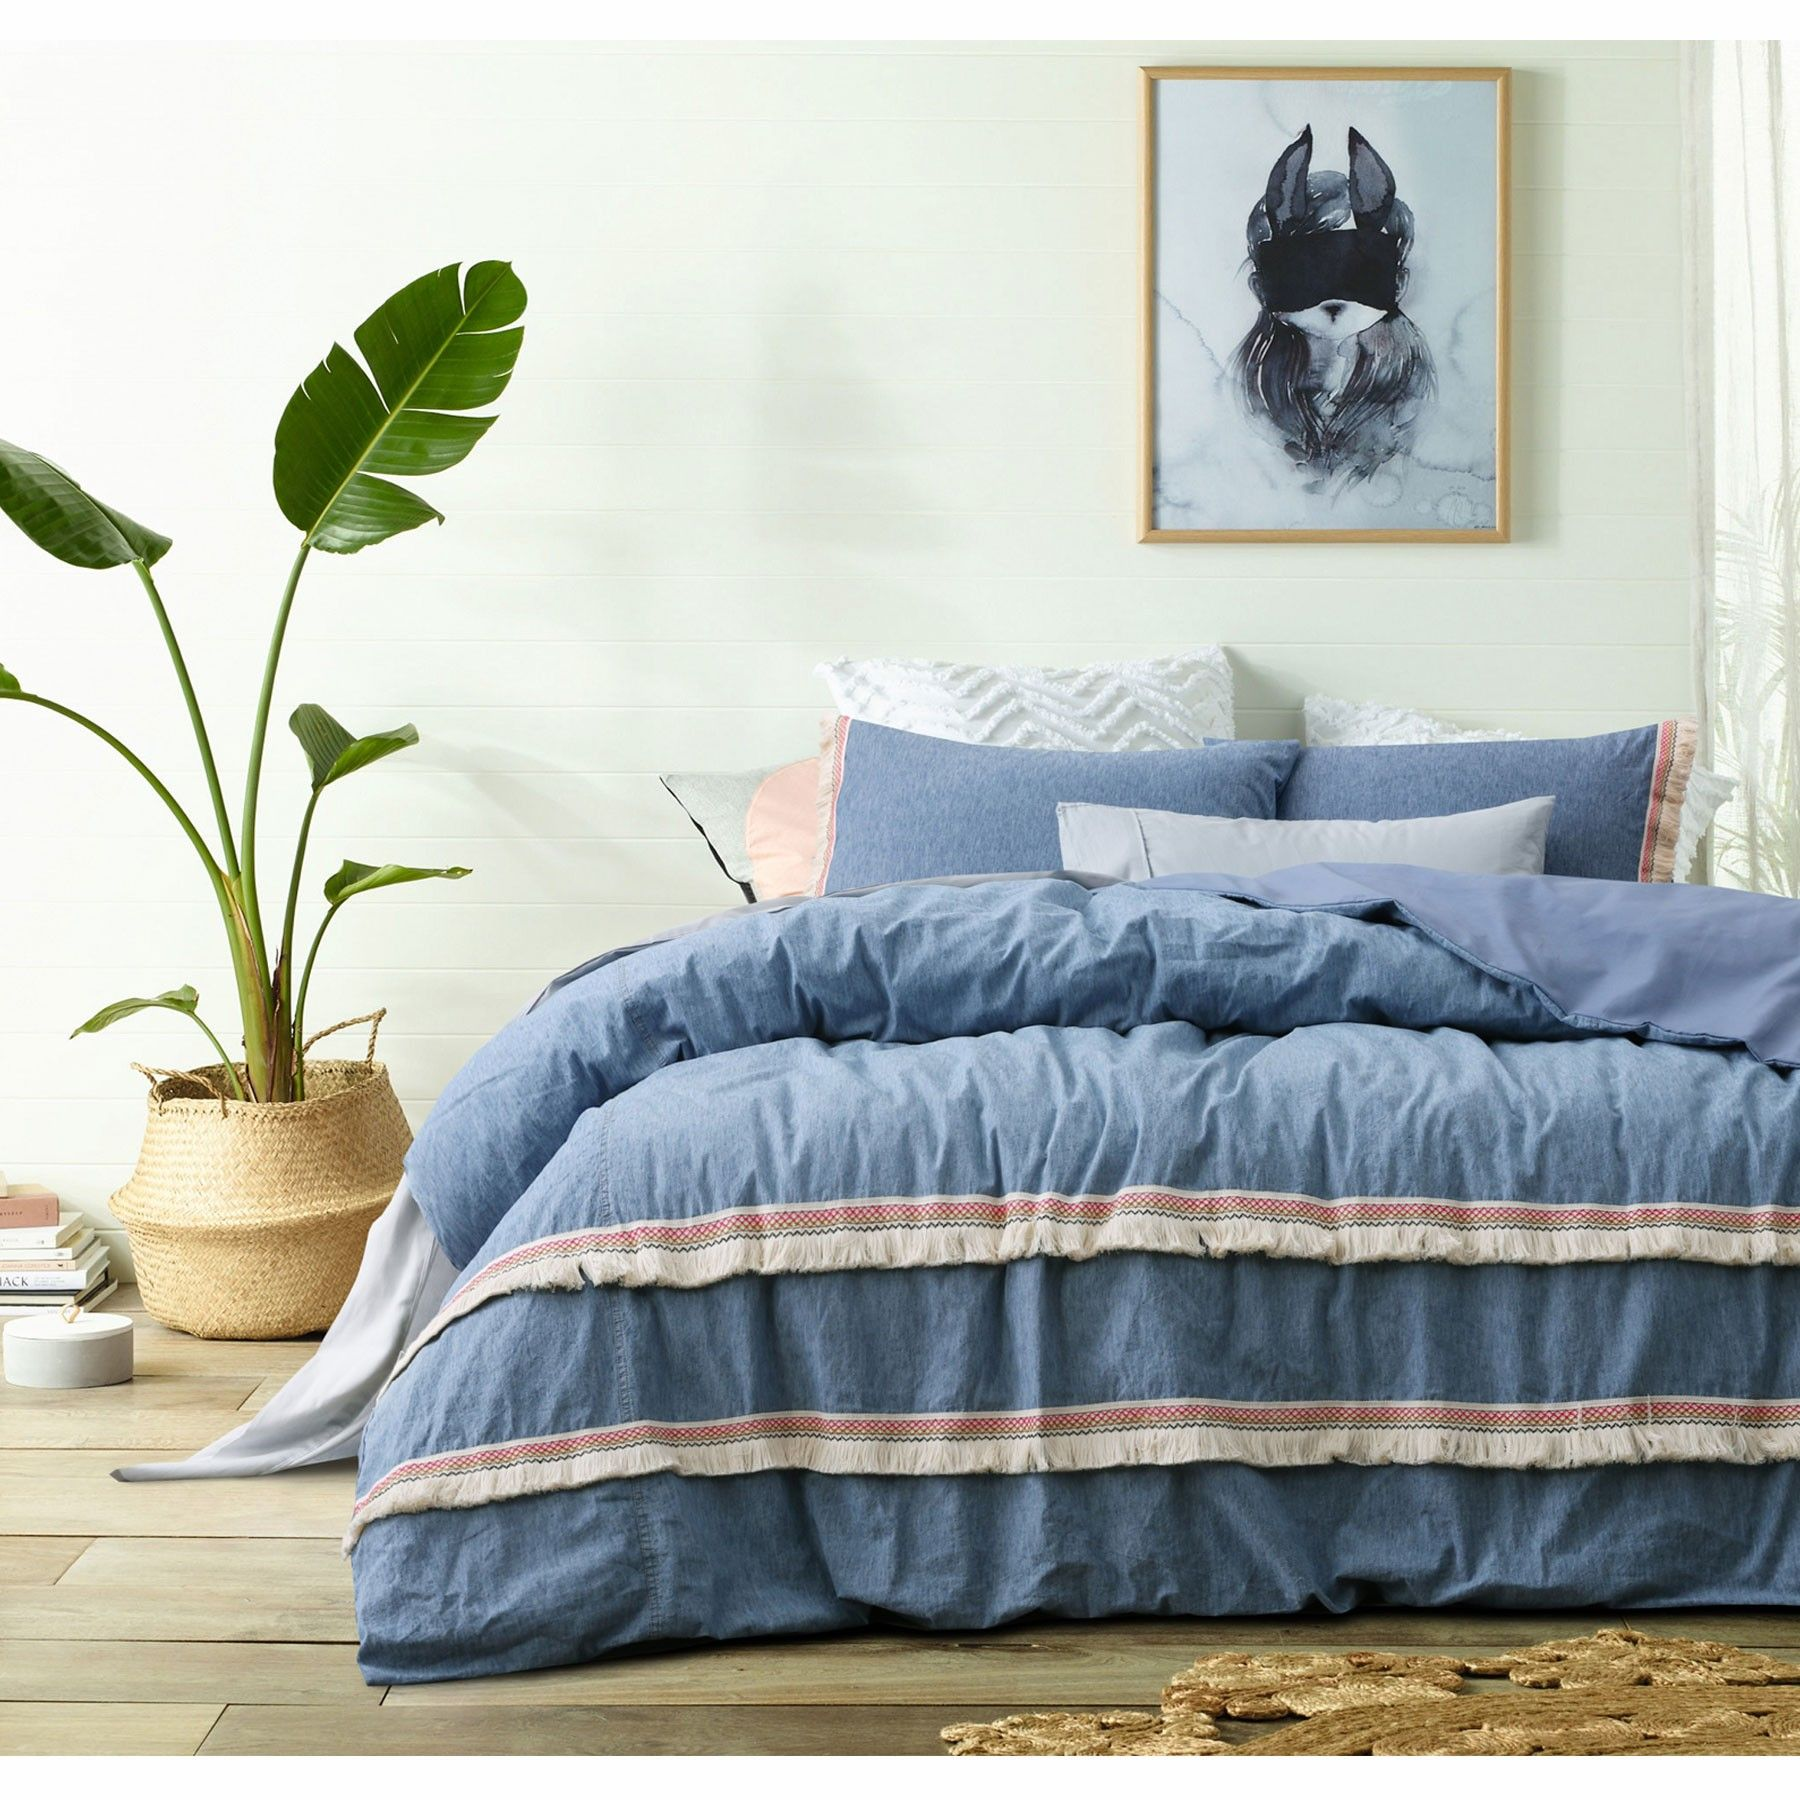 Denim Check Blue Poly Cotton Duvet Quilt Cover Pillowcases Bedding Set S D K Sfhs Org